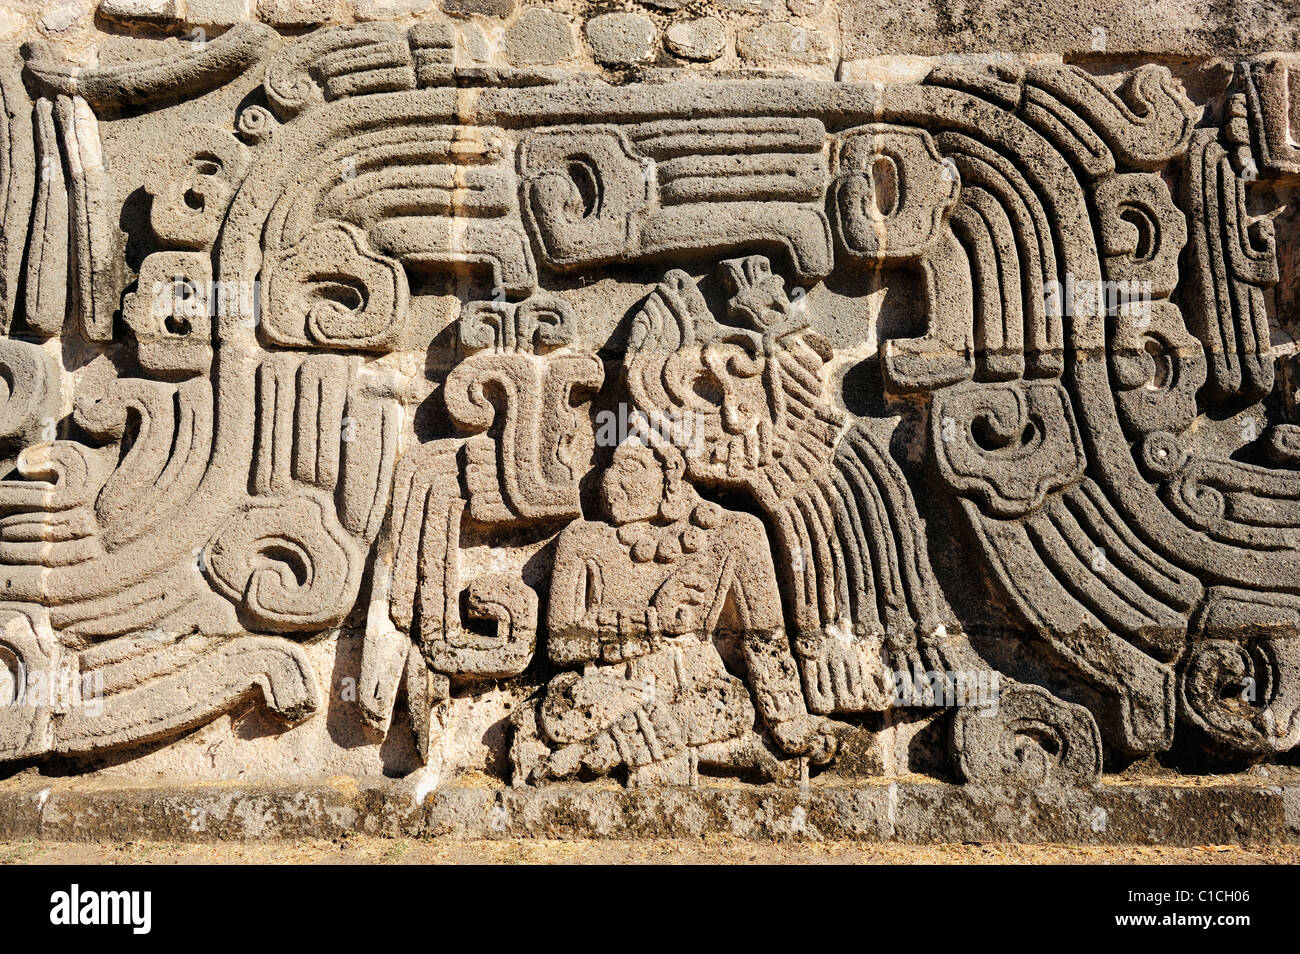 Wall relief from Pyramid of the Feathered Serpent at Xochicalco in Morelos State, Mexico - Stock Image